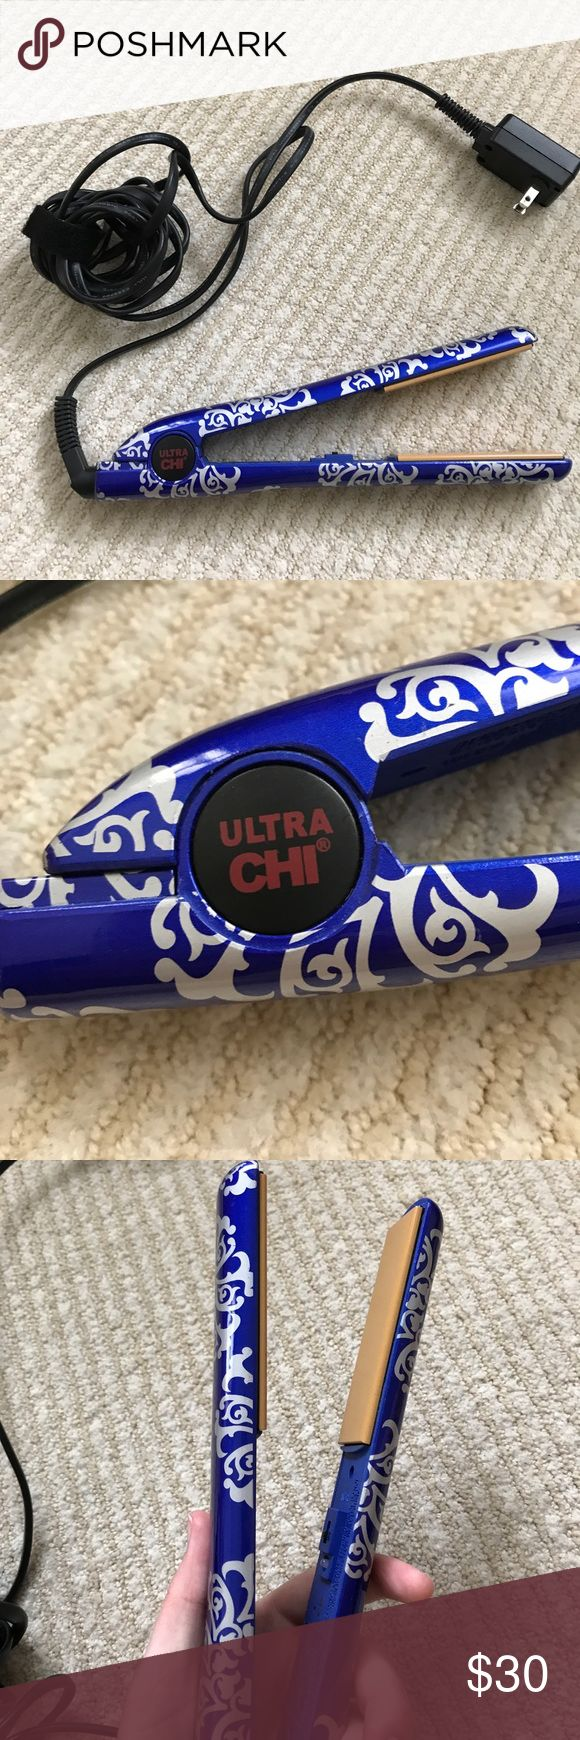 Ultra CHI Hair Straightener Royal Blue with white detail. GREAT condition and works. Used for Straightening Hair CHI Other